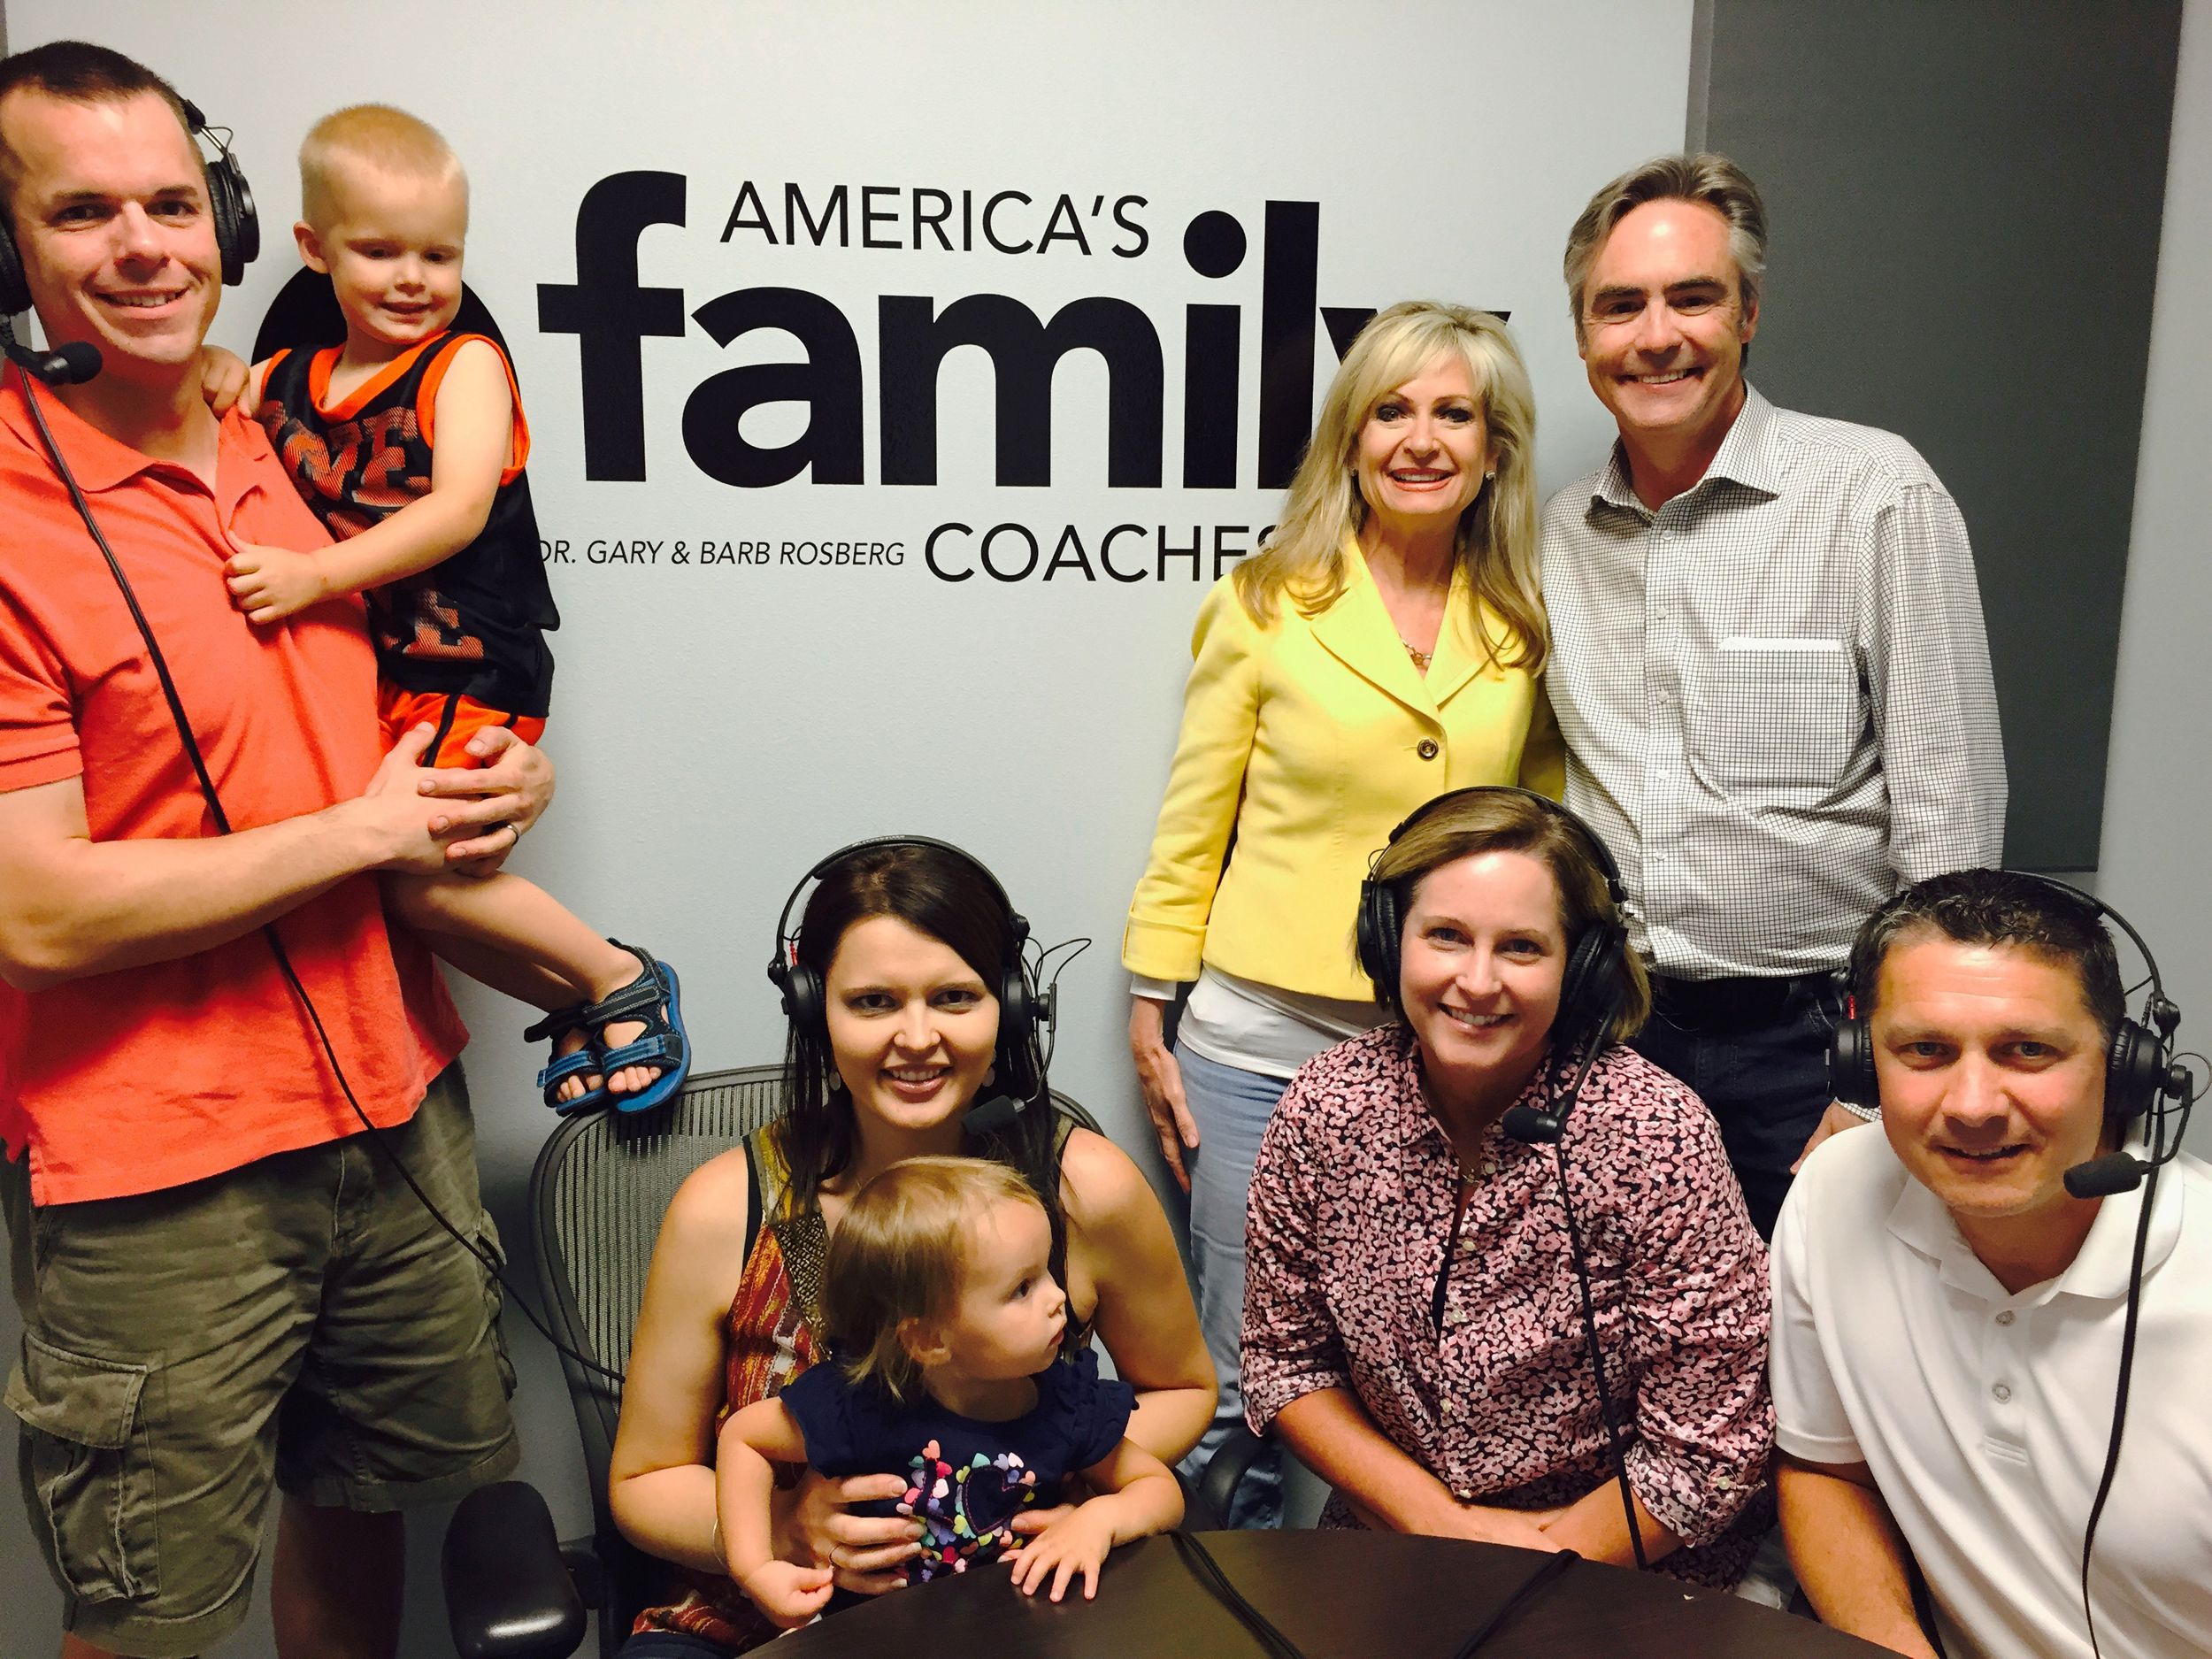 independence-day-fourth-of-july-americas-family-coaches-podcast-audio